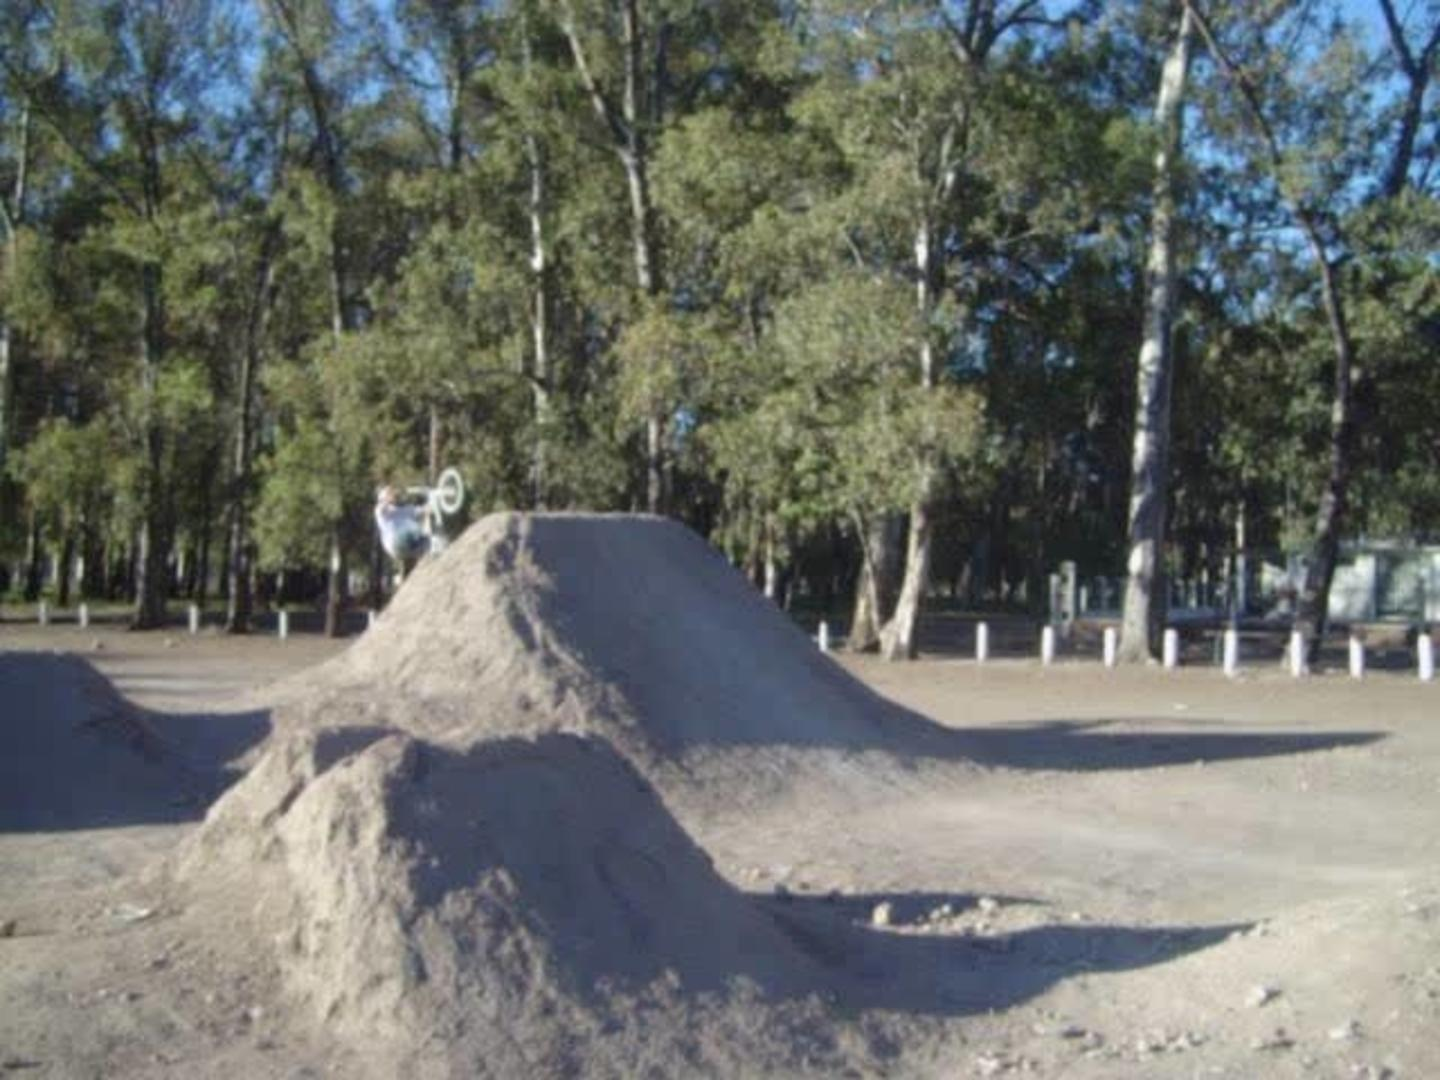 bmx side front flip lands on back wheel jukin media